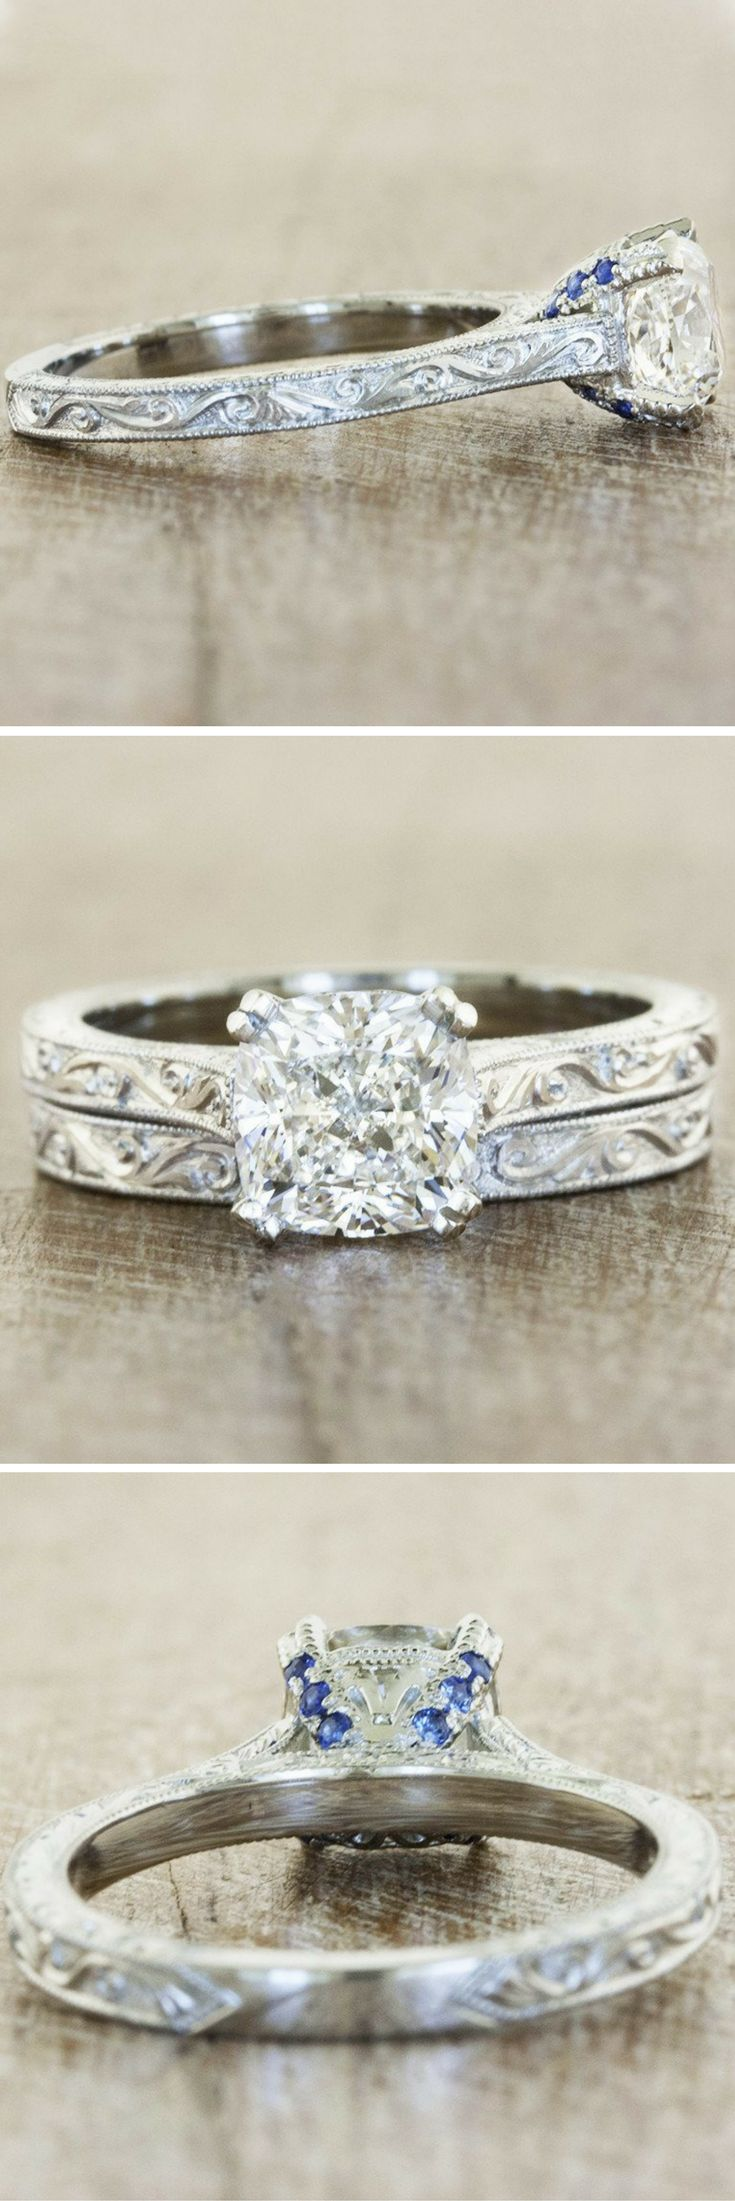 The Rayna is a hand engraved vintage-inspired solitaire engagement ring with a 1.5 ct cushion cut diamond, by Ken & Dana Design.